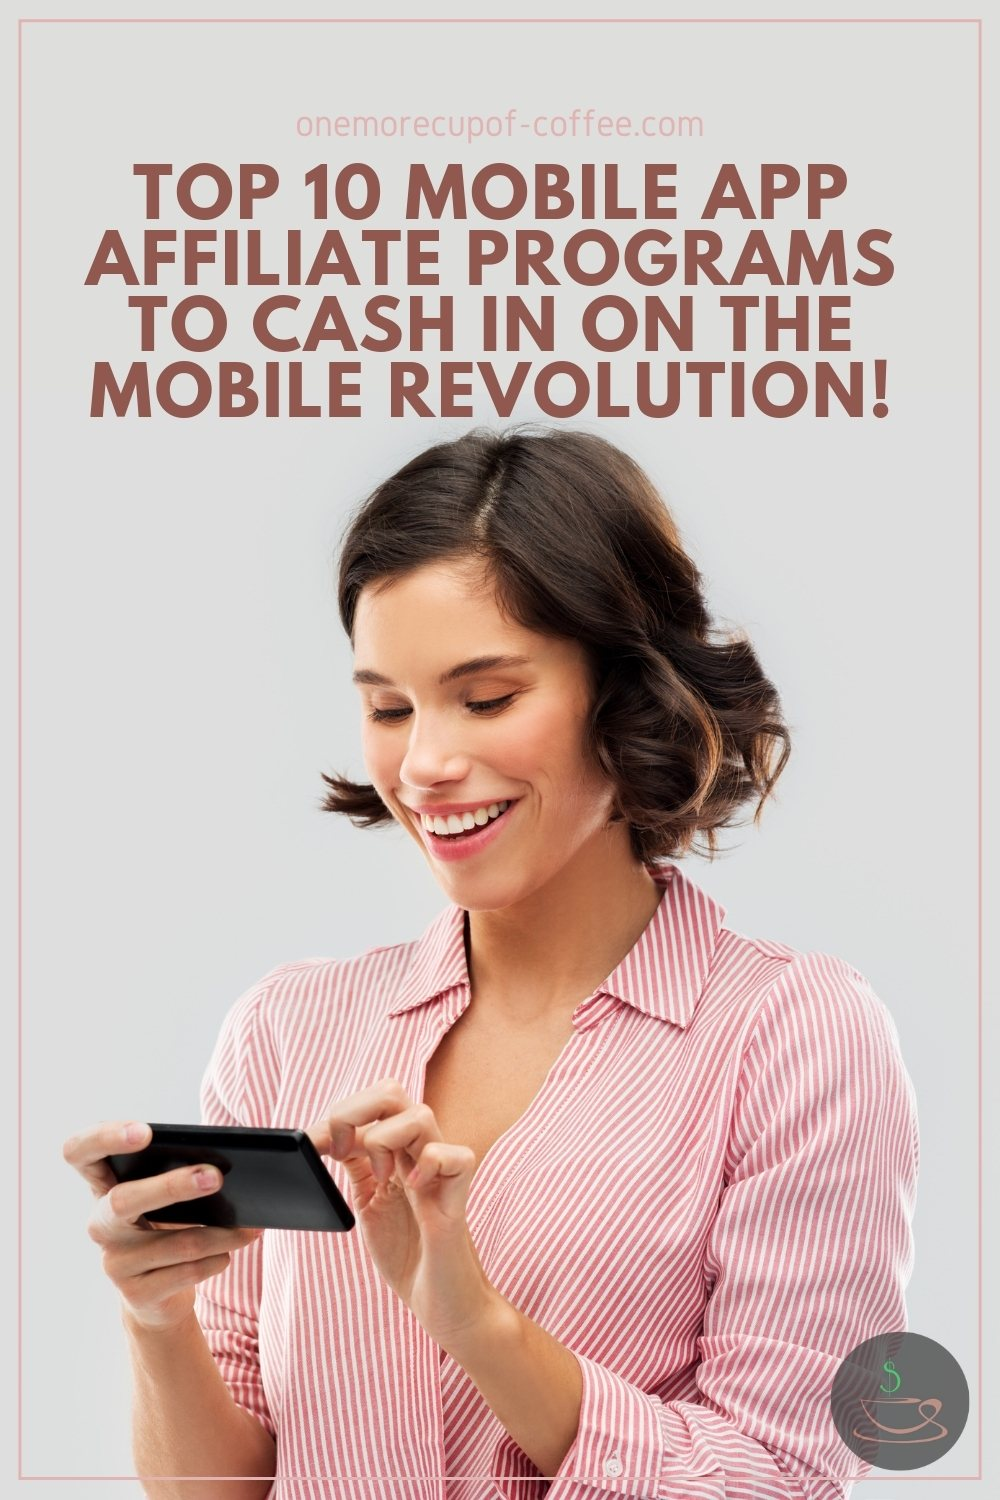 """woman with curly short black hair in pink long sleeves top on her mobile phone, with text overlay """"Top 10 Mobile App Affiliate Programs To Cash In On The Mobile Revolution"""""""